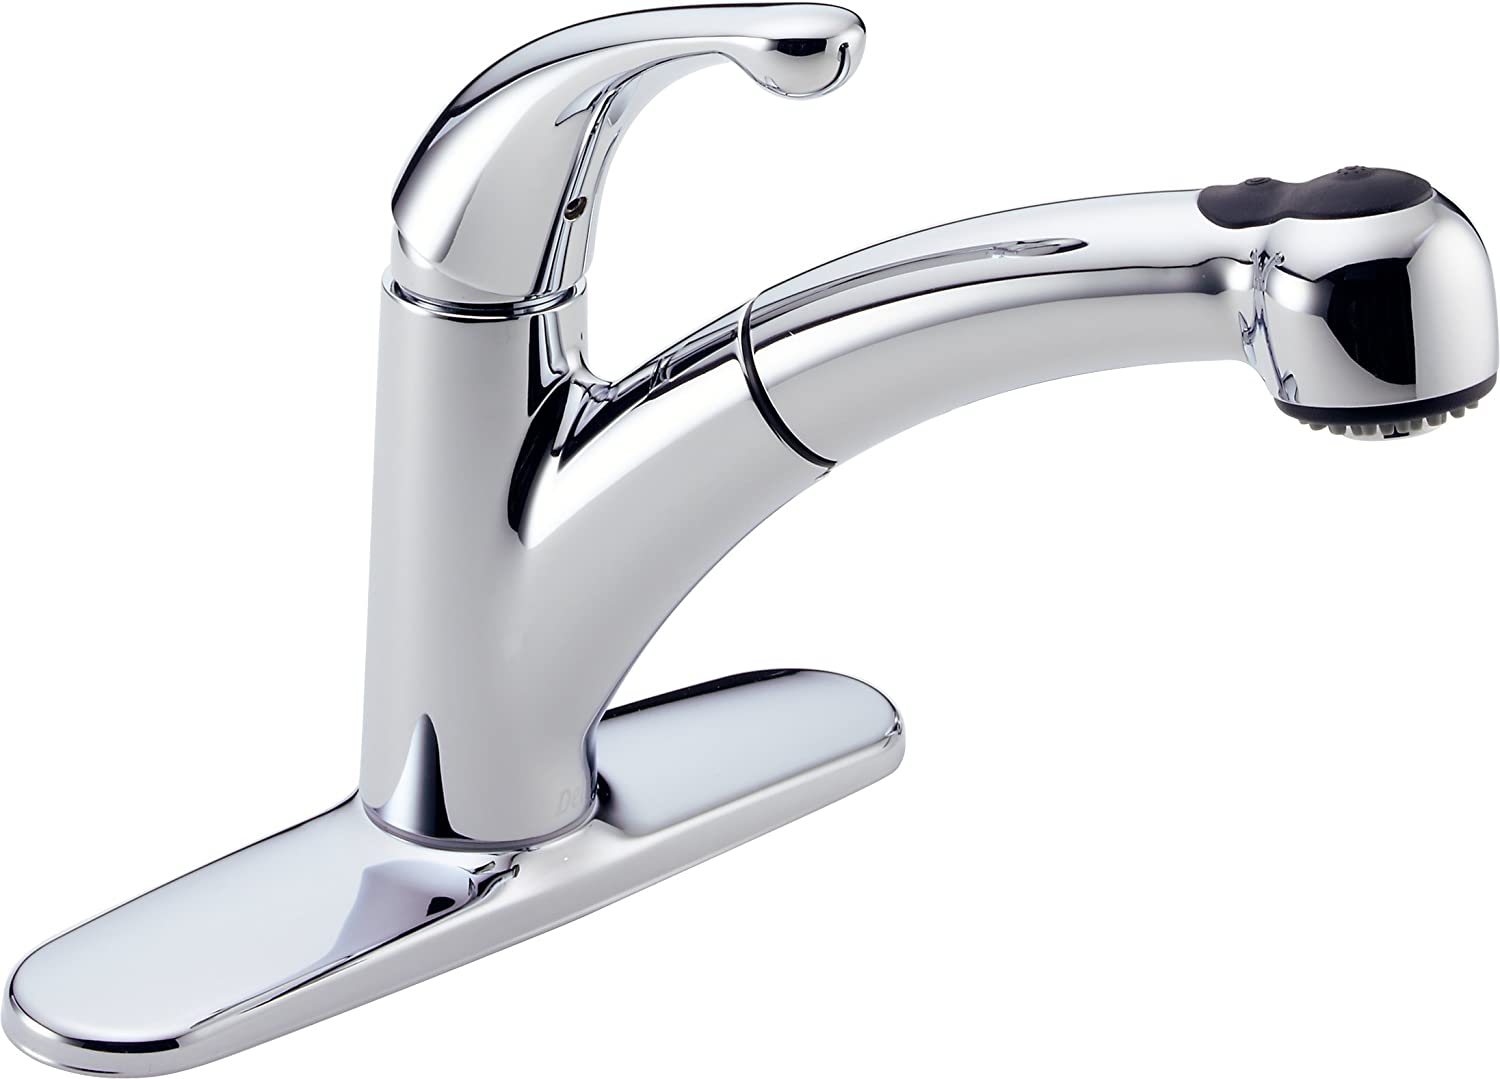 Delta 467 DST Palo Single Handle Pull Out Kitchen Faucet, Chrome   Touch On  Kitchen Sink Faucets   Amazon.com